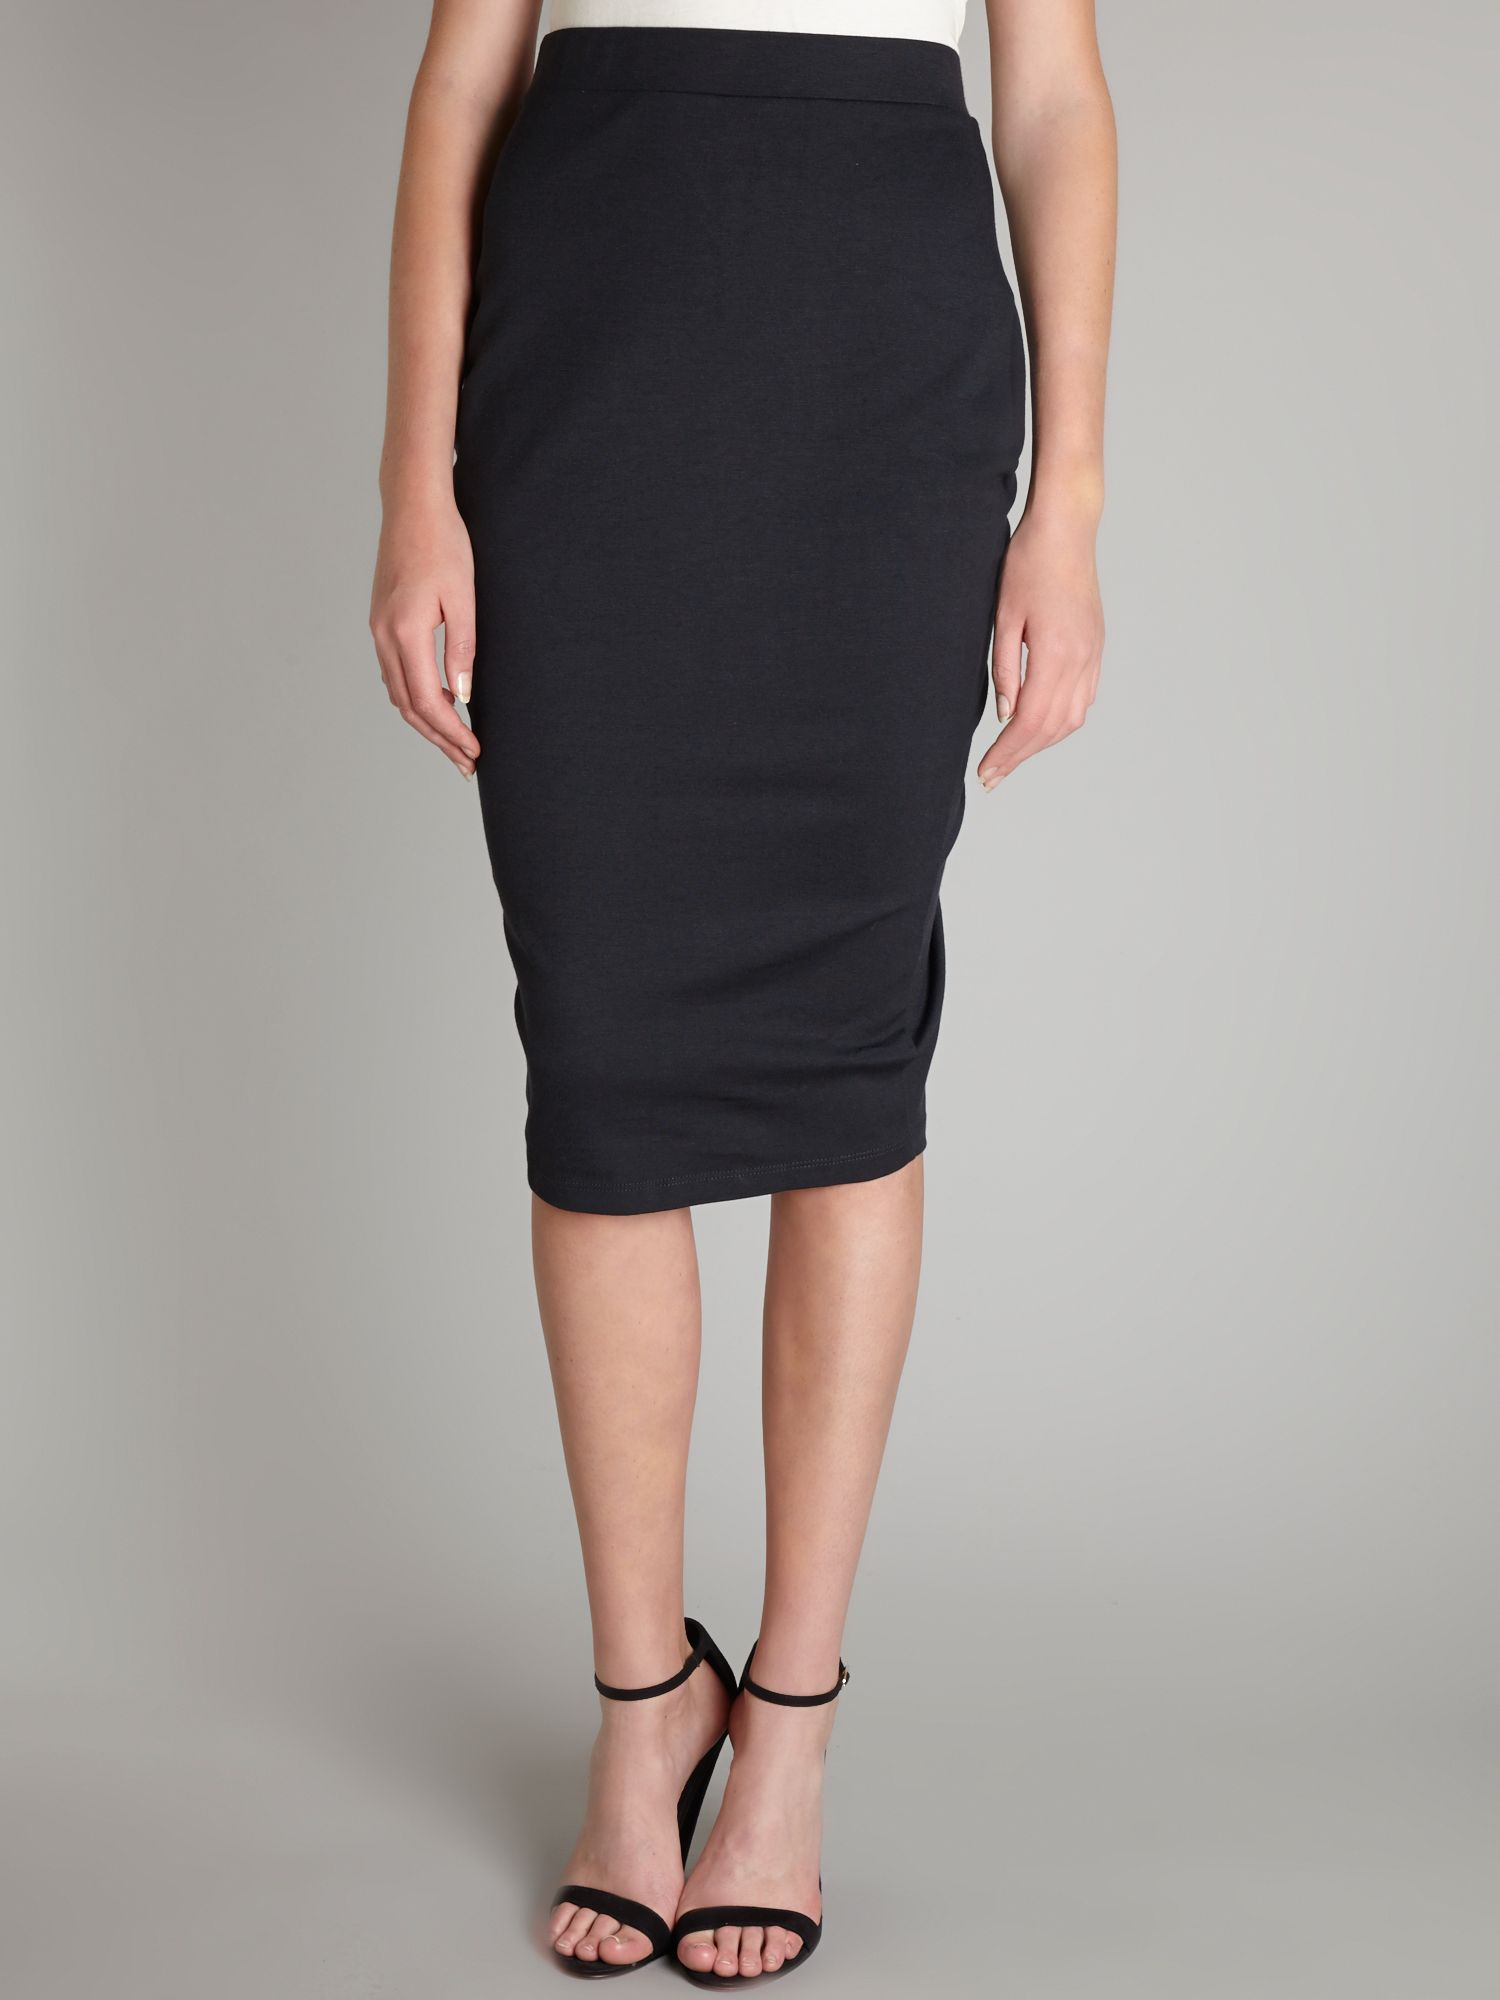 AJ criss cross smock pencil skirt